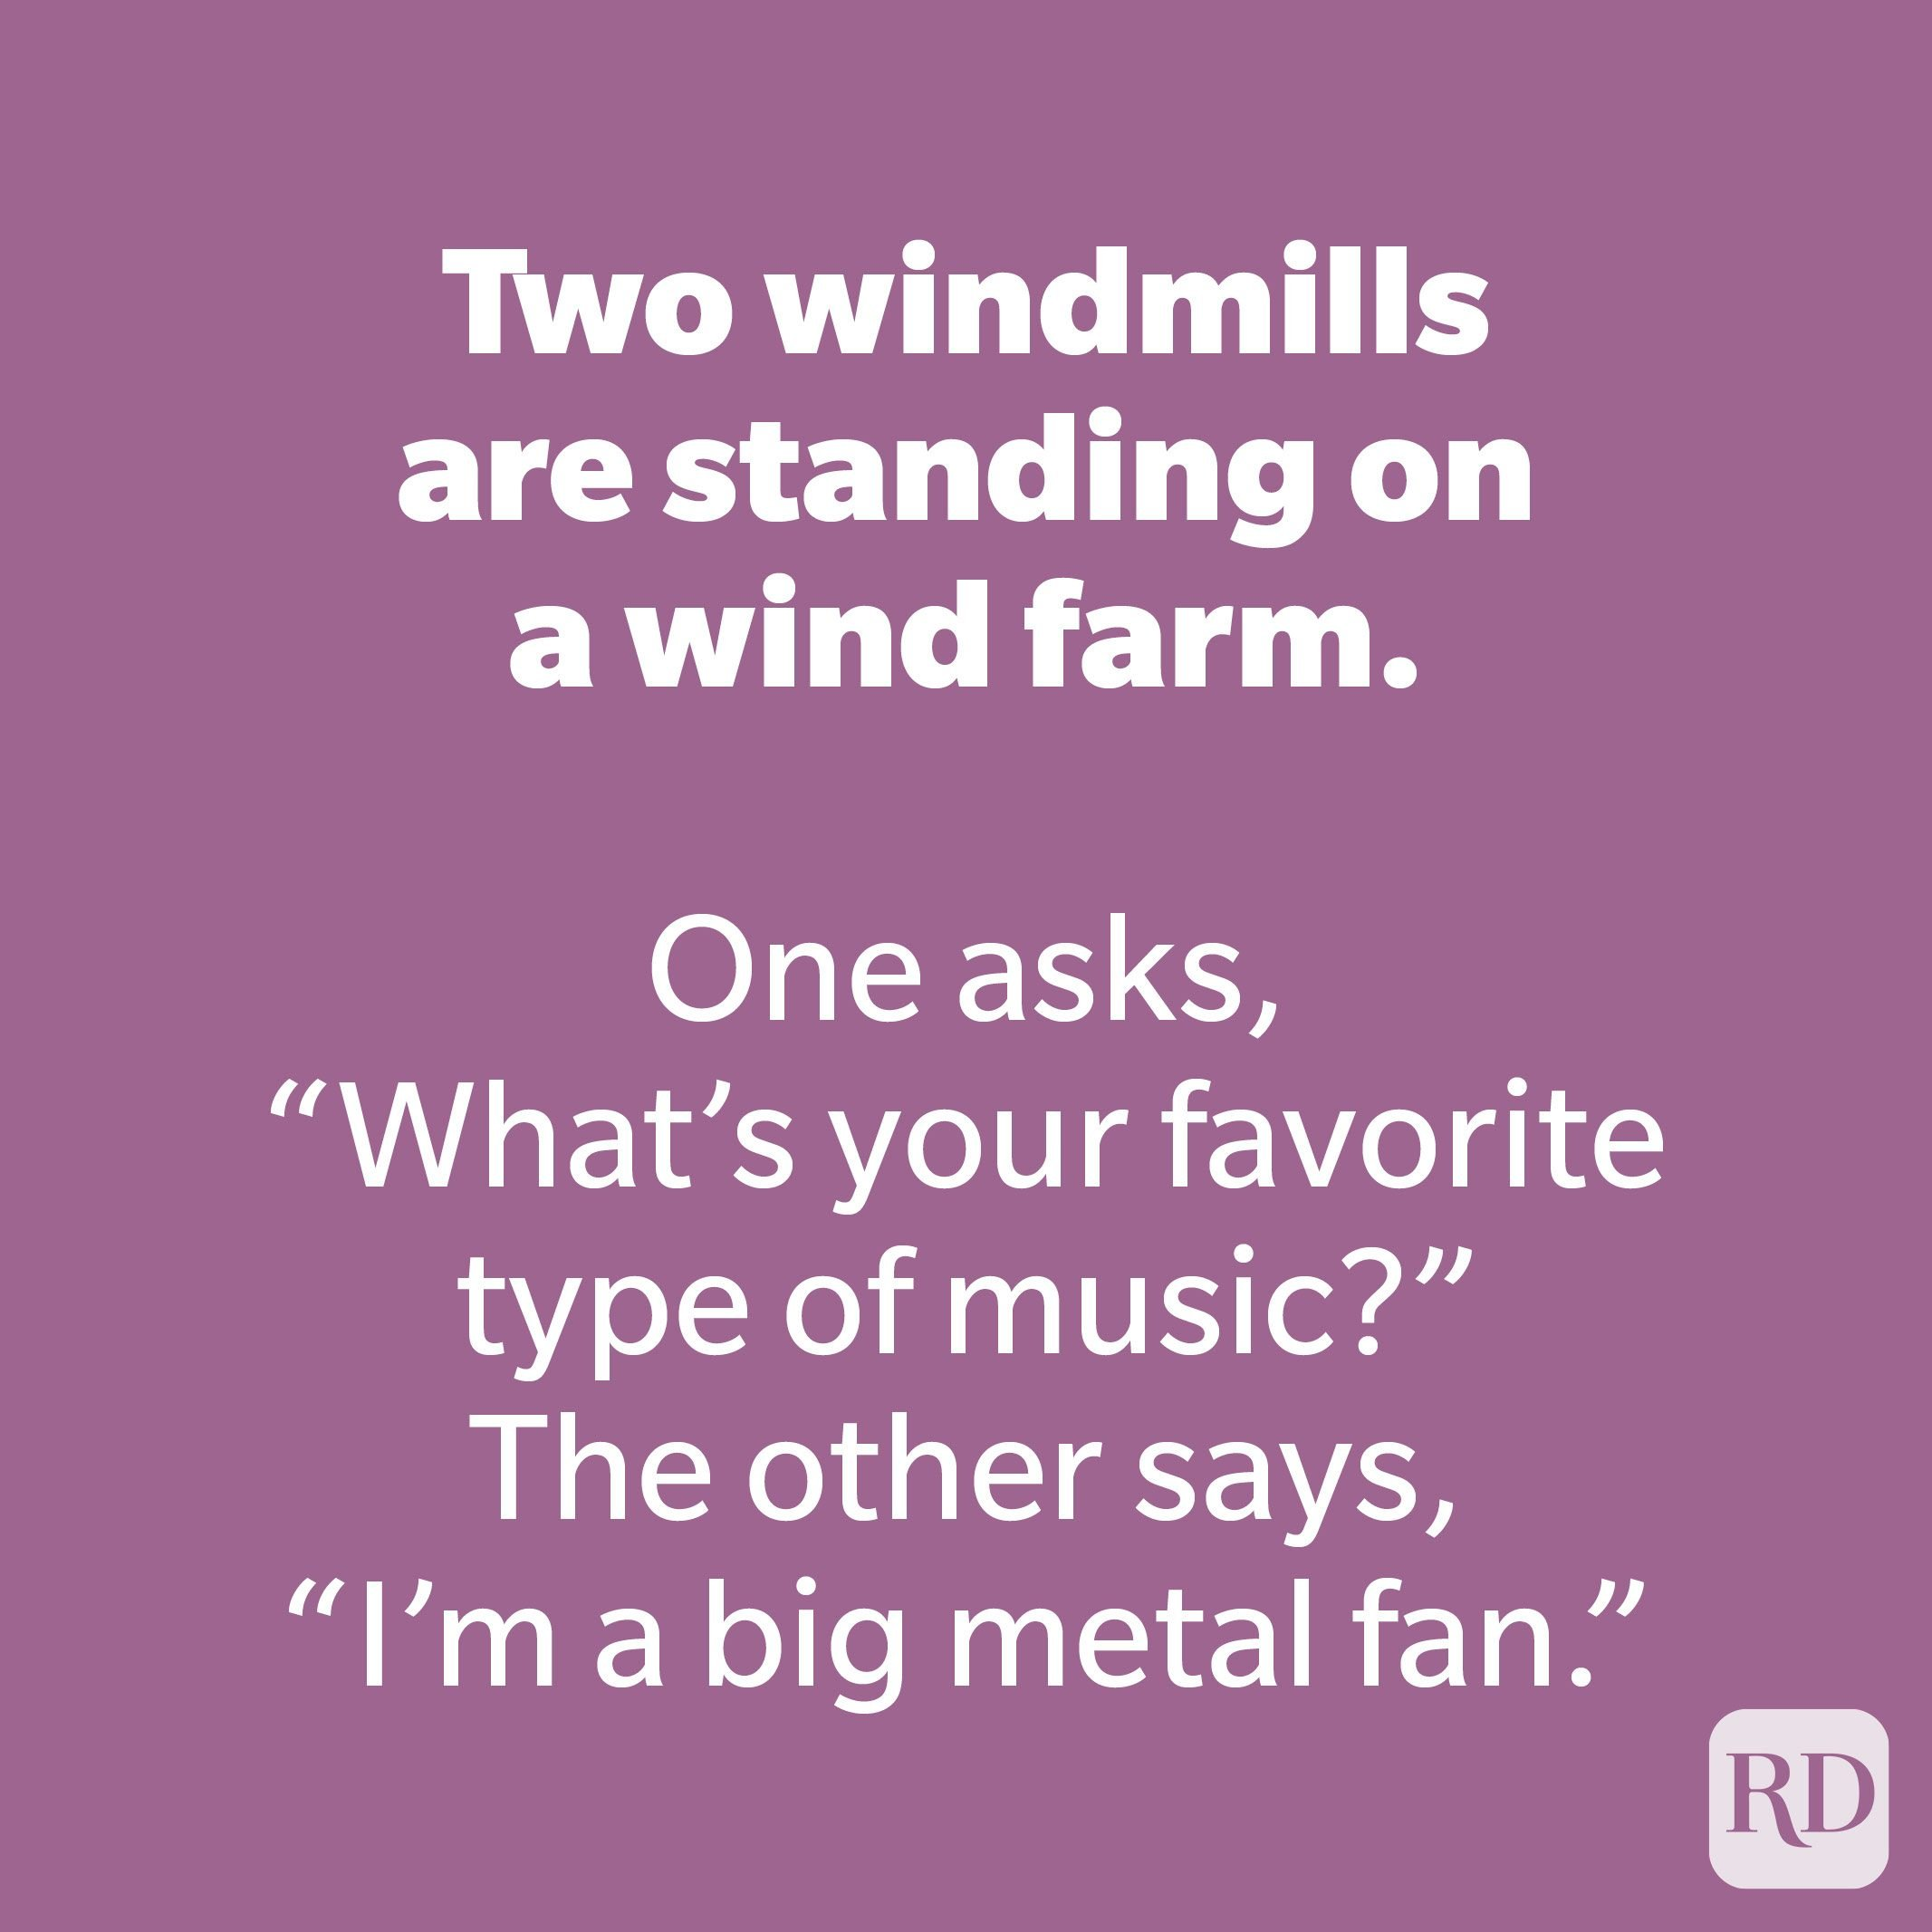 Two windmills are standing on a wind farm.